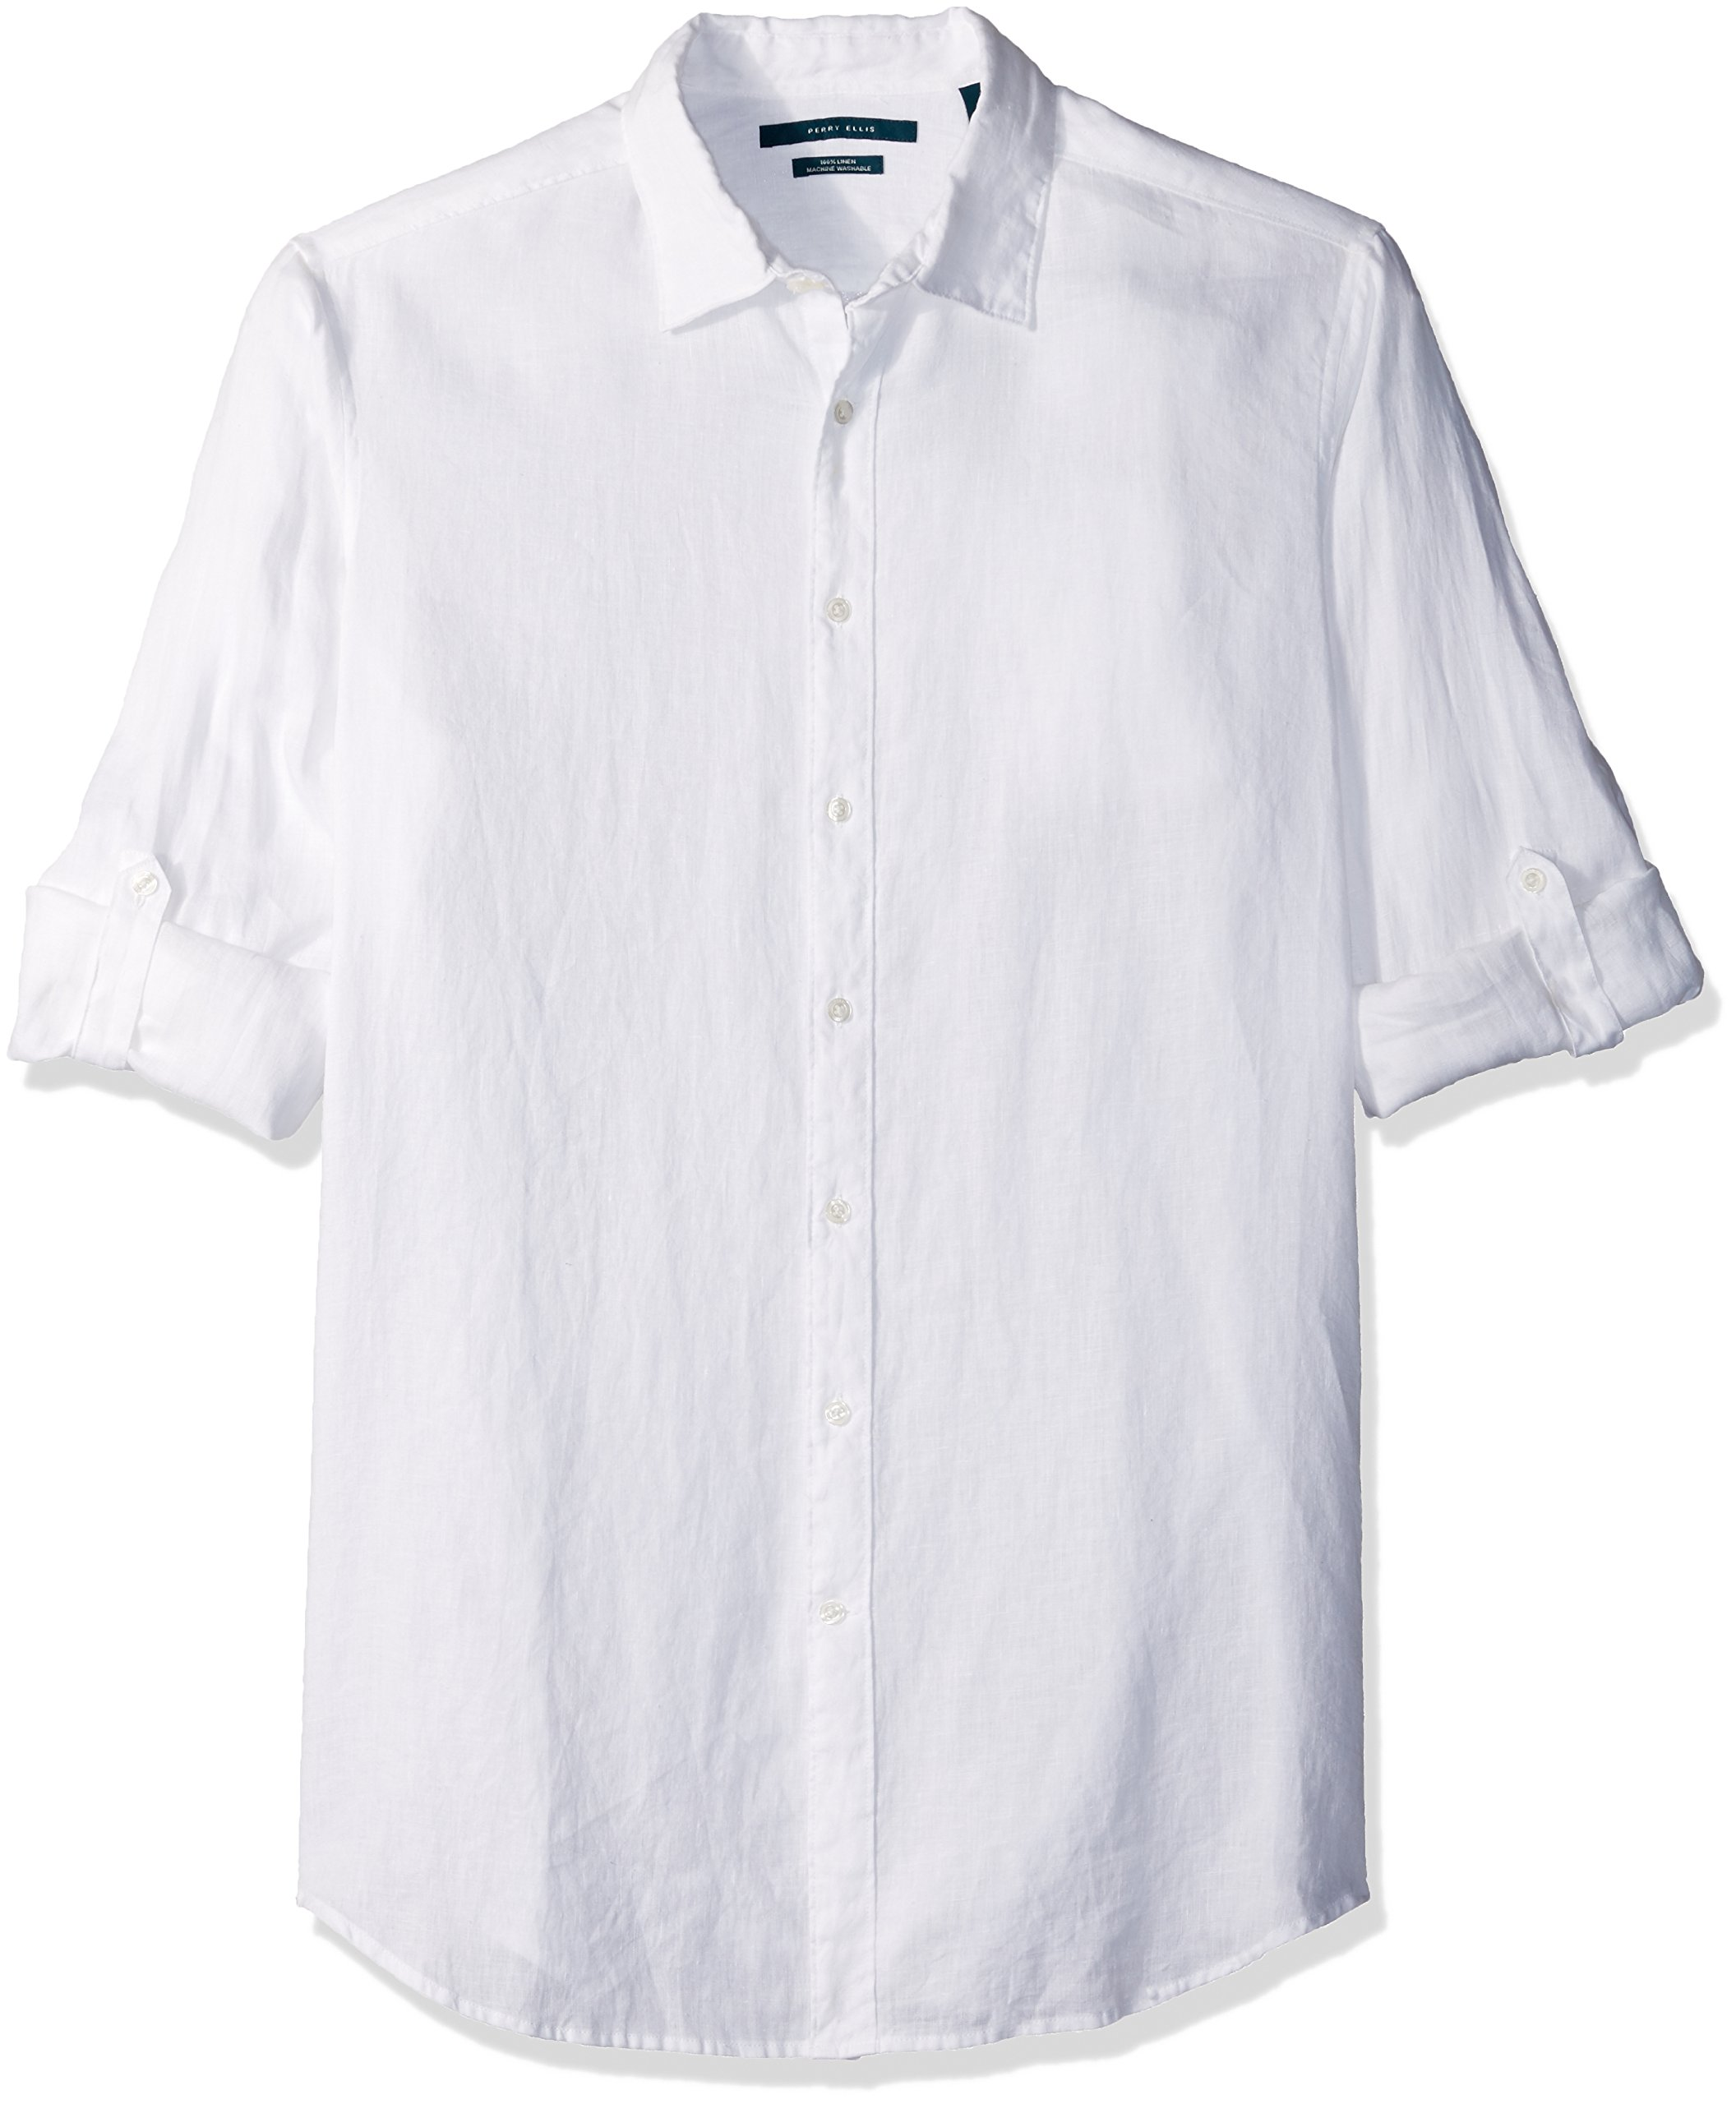 Perry Ellis Men's Big and Tall Solid Rolled-Sleeve Linen Shirt